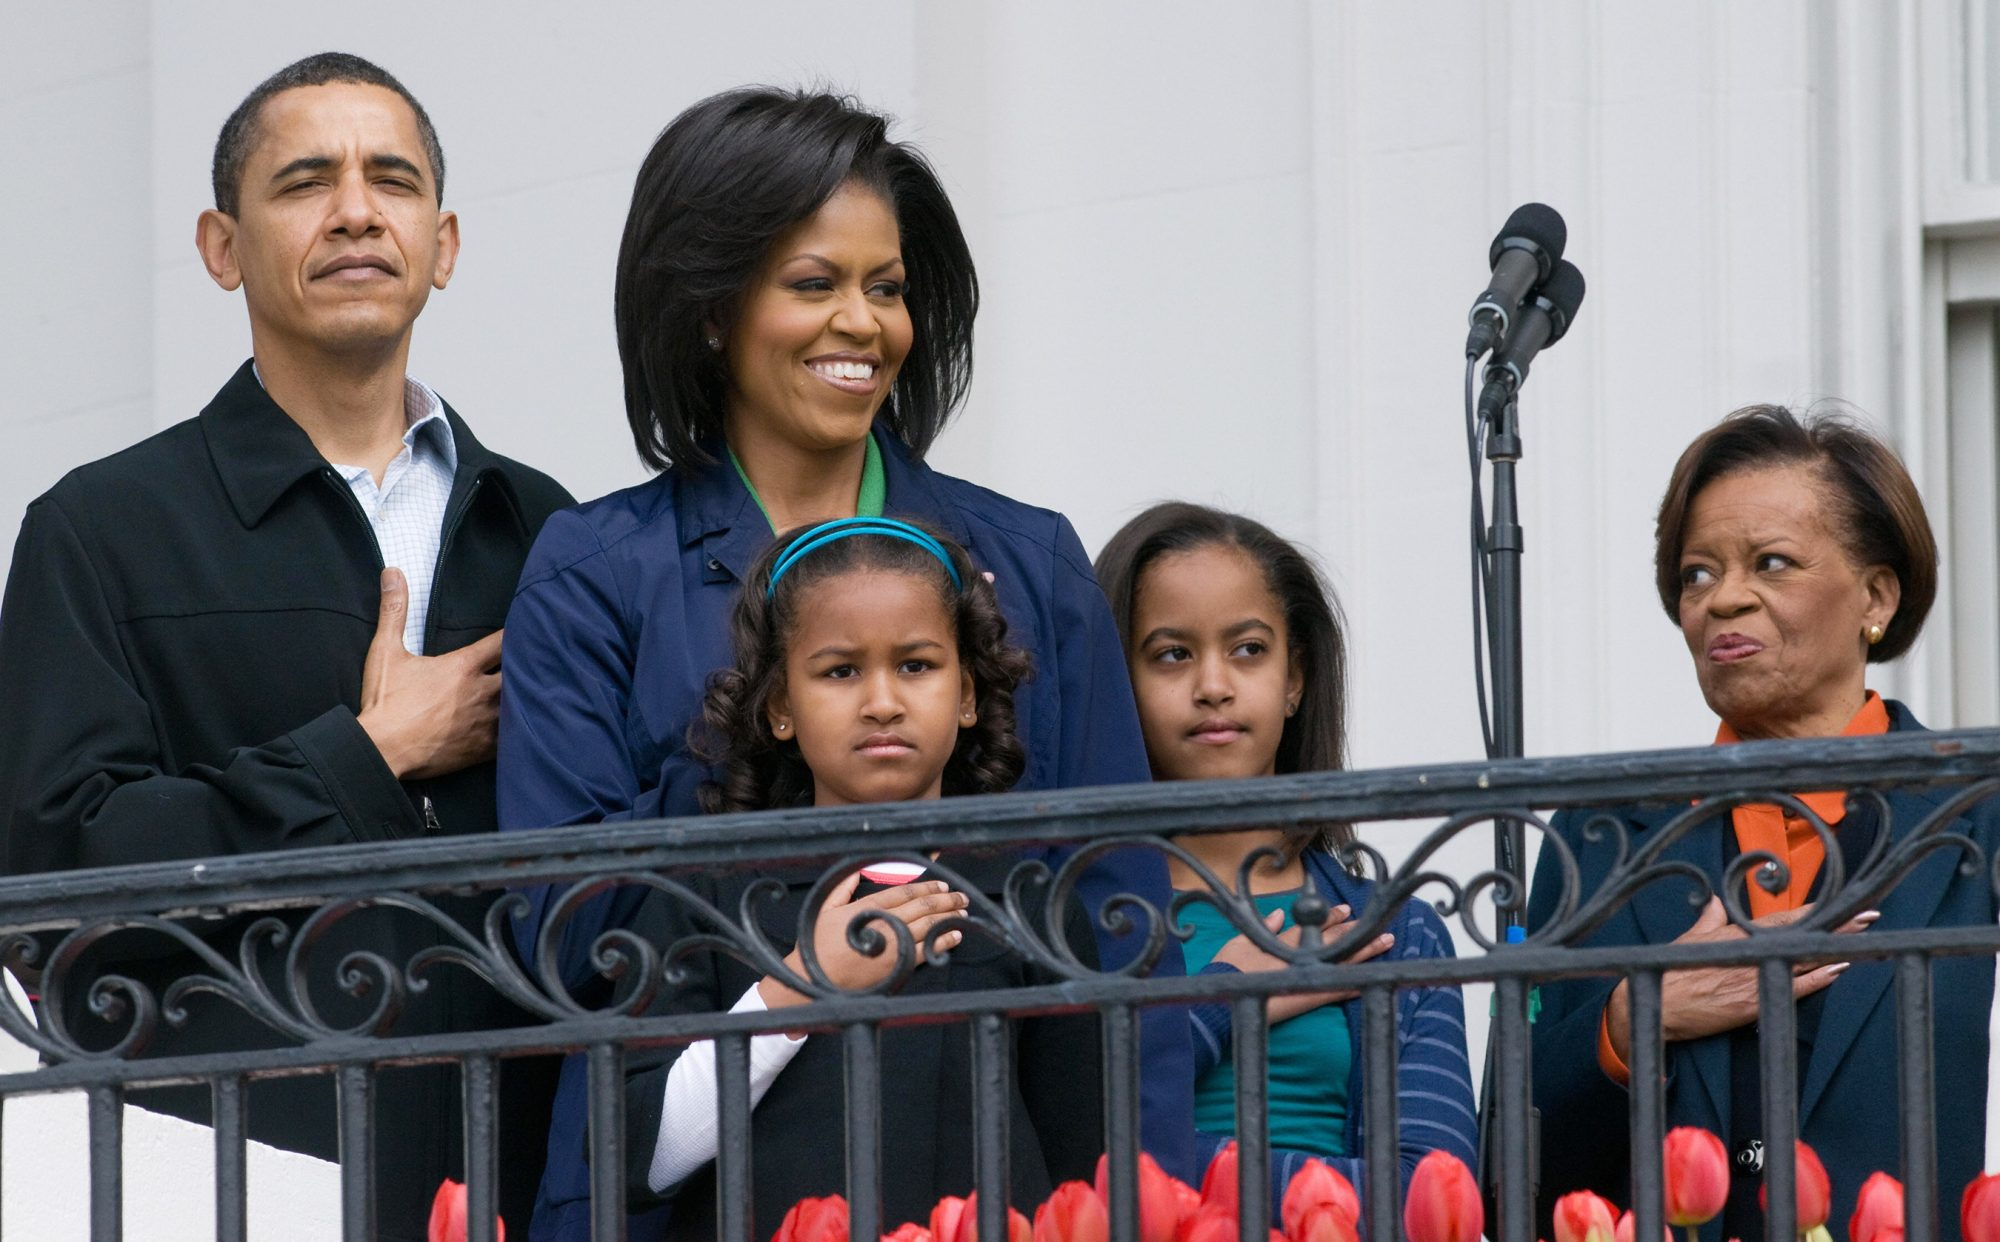 Barack Obama stands alongside First Lady Michelle Obama, their daughters Sasha and Malia and Marian Robinson (R), Michelle's mother, for the National Anthem during the annual White House Easter Egg Roll on the South Lawn of the White House in Washington, DC, on April 13, 2009.